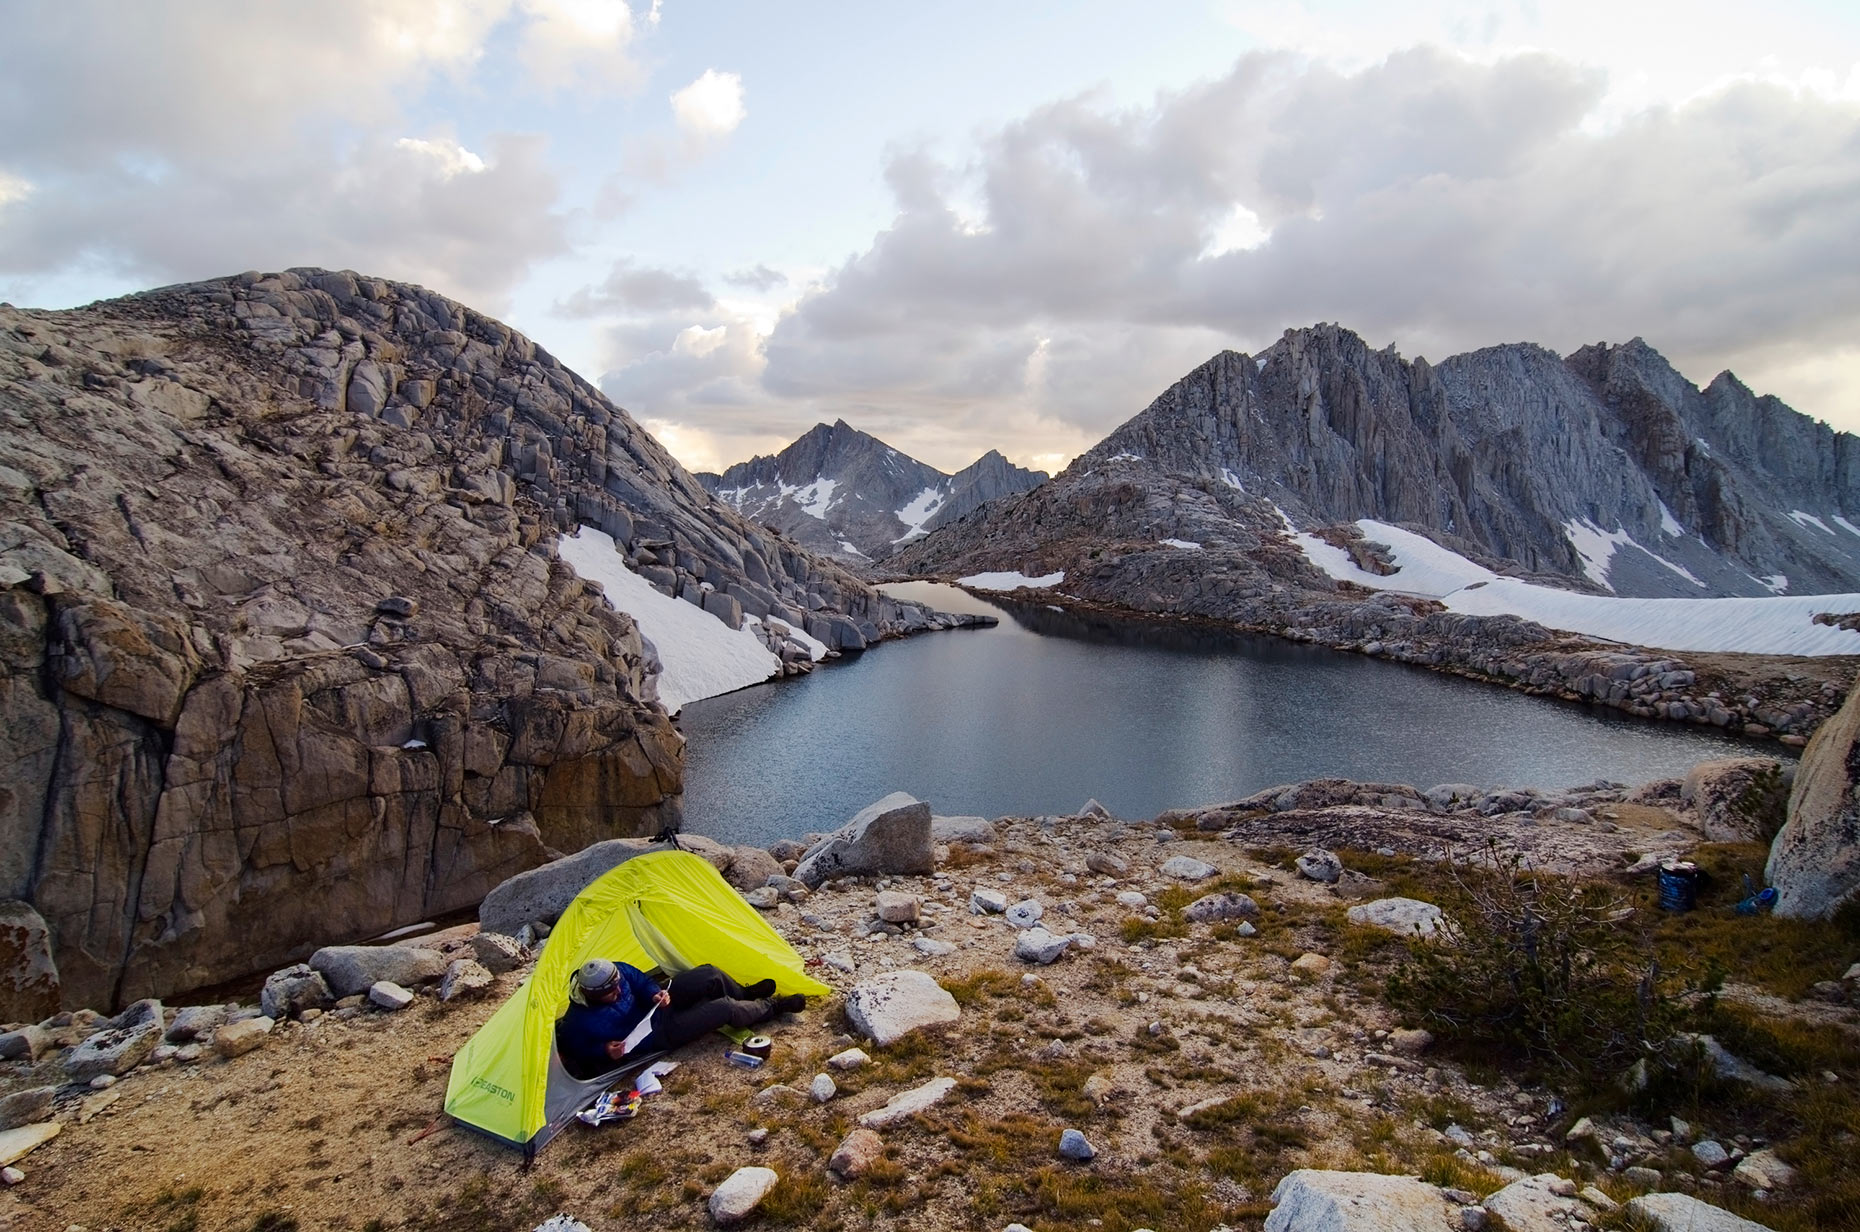 Camping At White Bear Lake - Bear Lakes Basin, Sierra Nevada, California